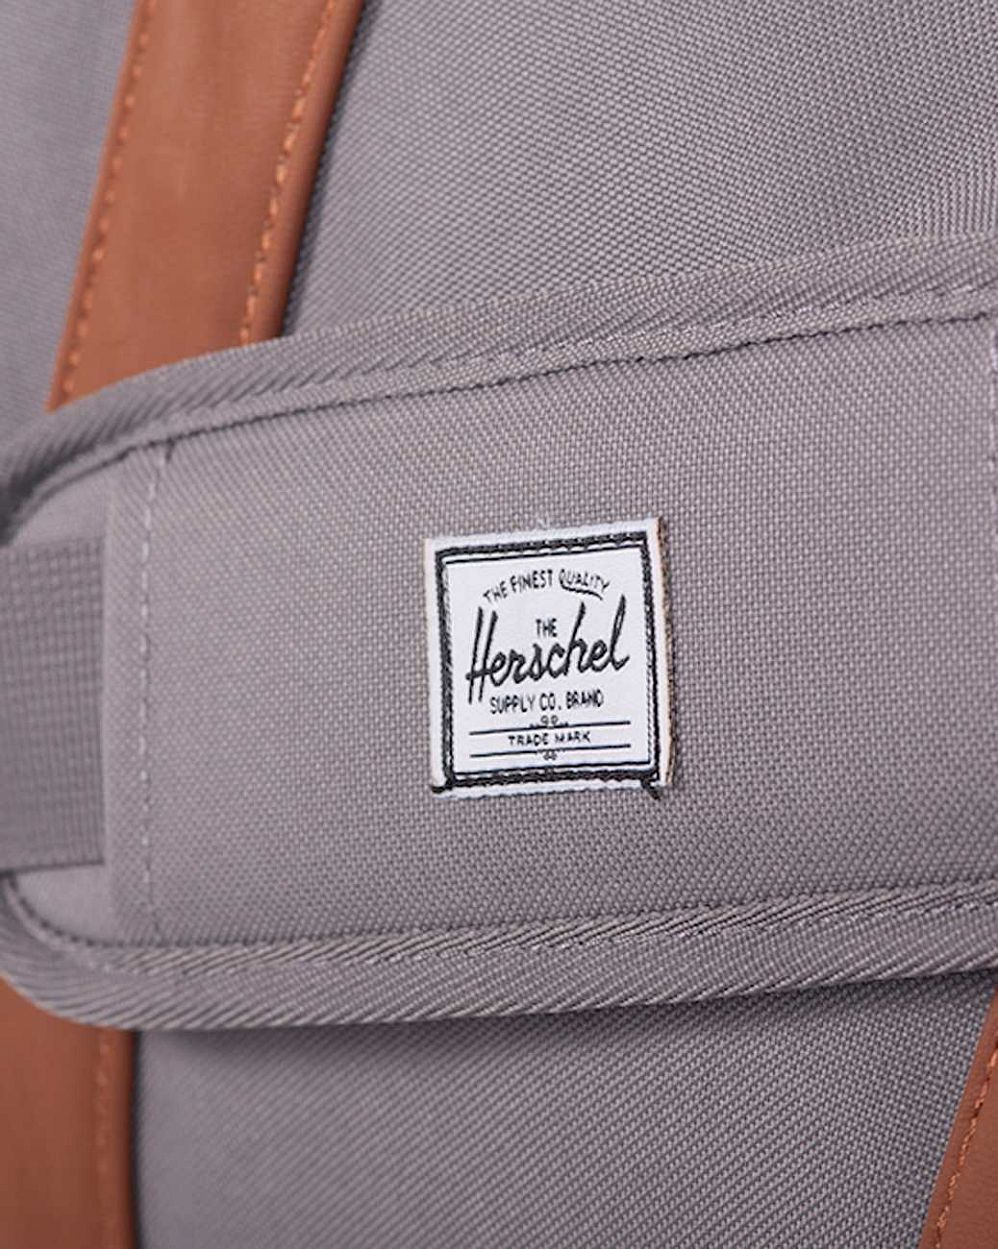 Сумка спортивная Herschel Ravine Grey Tan купить в интернете